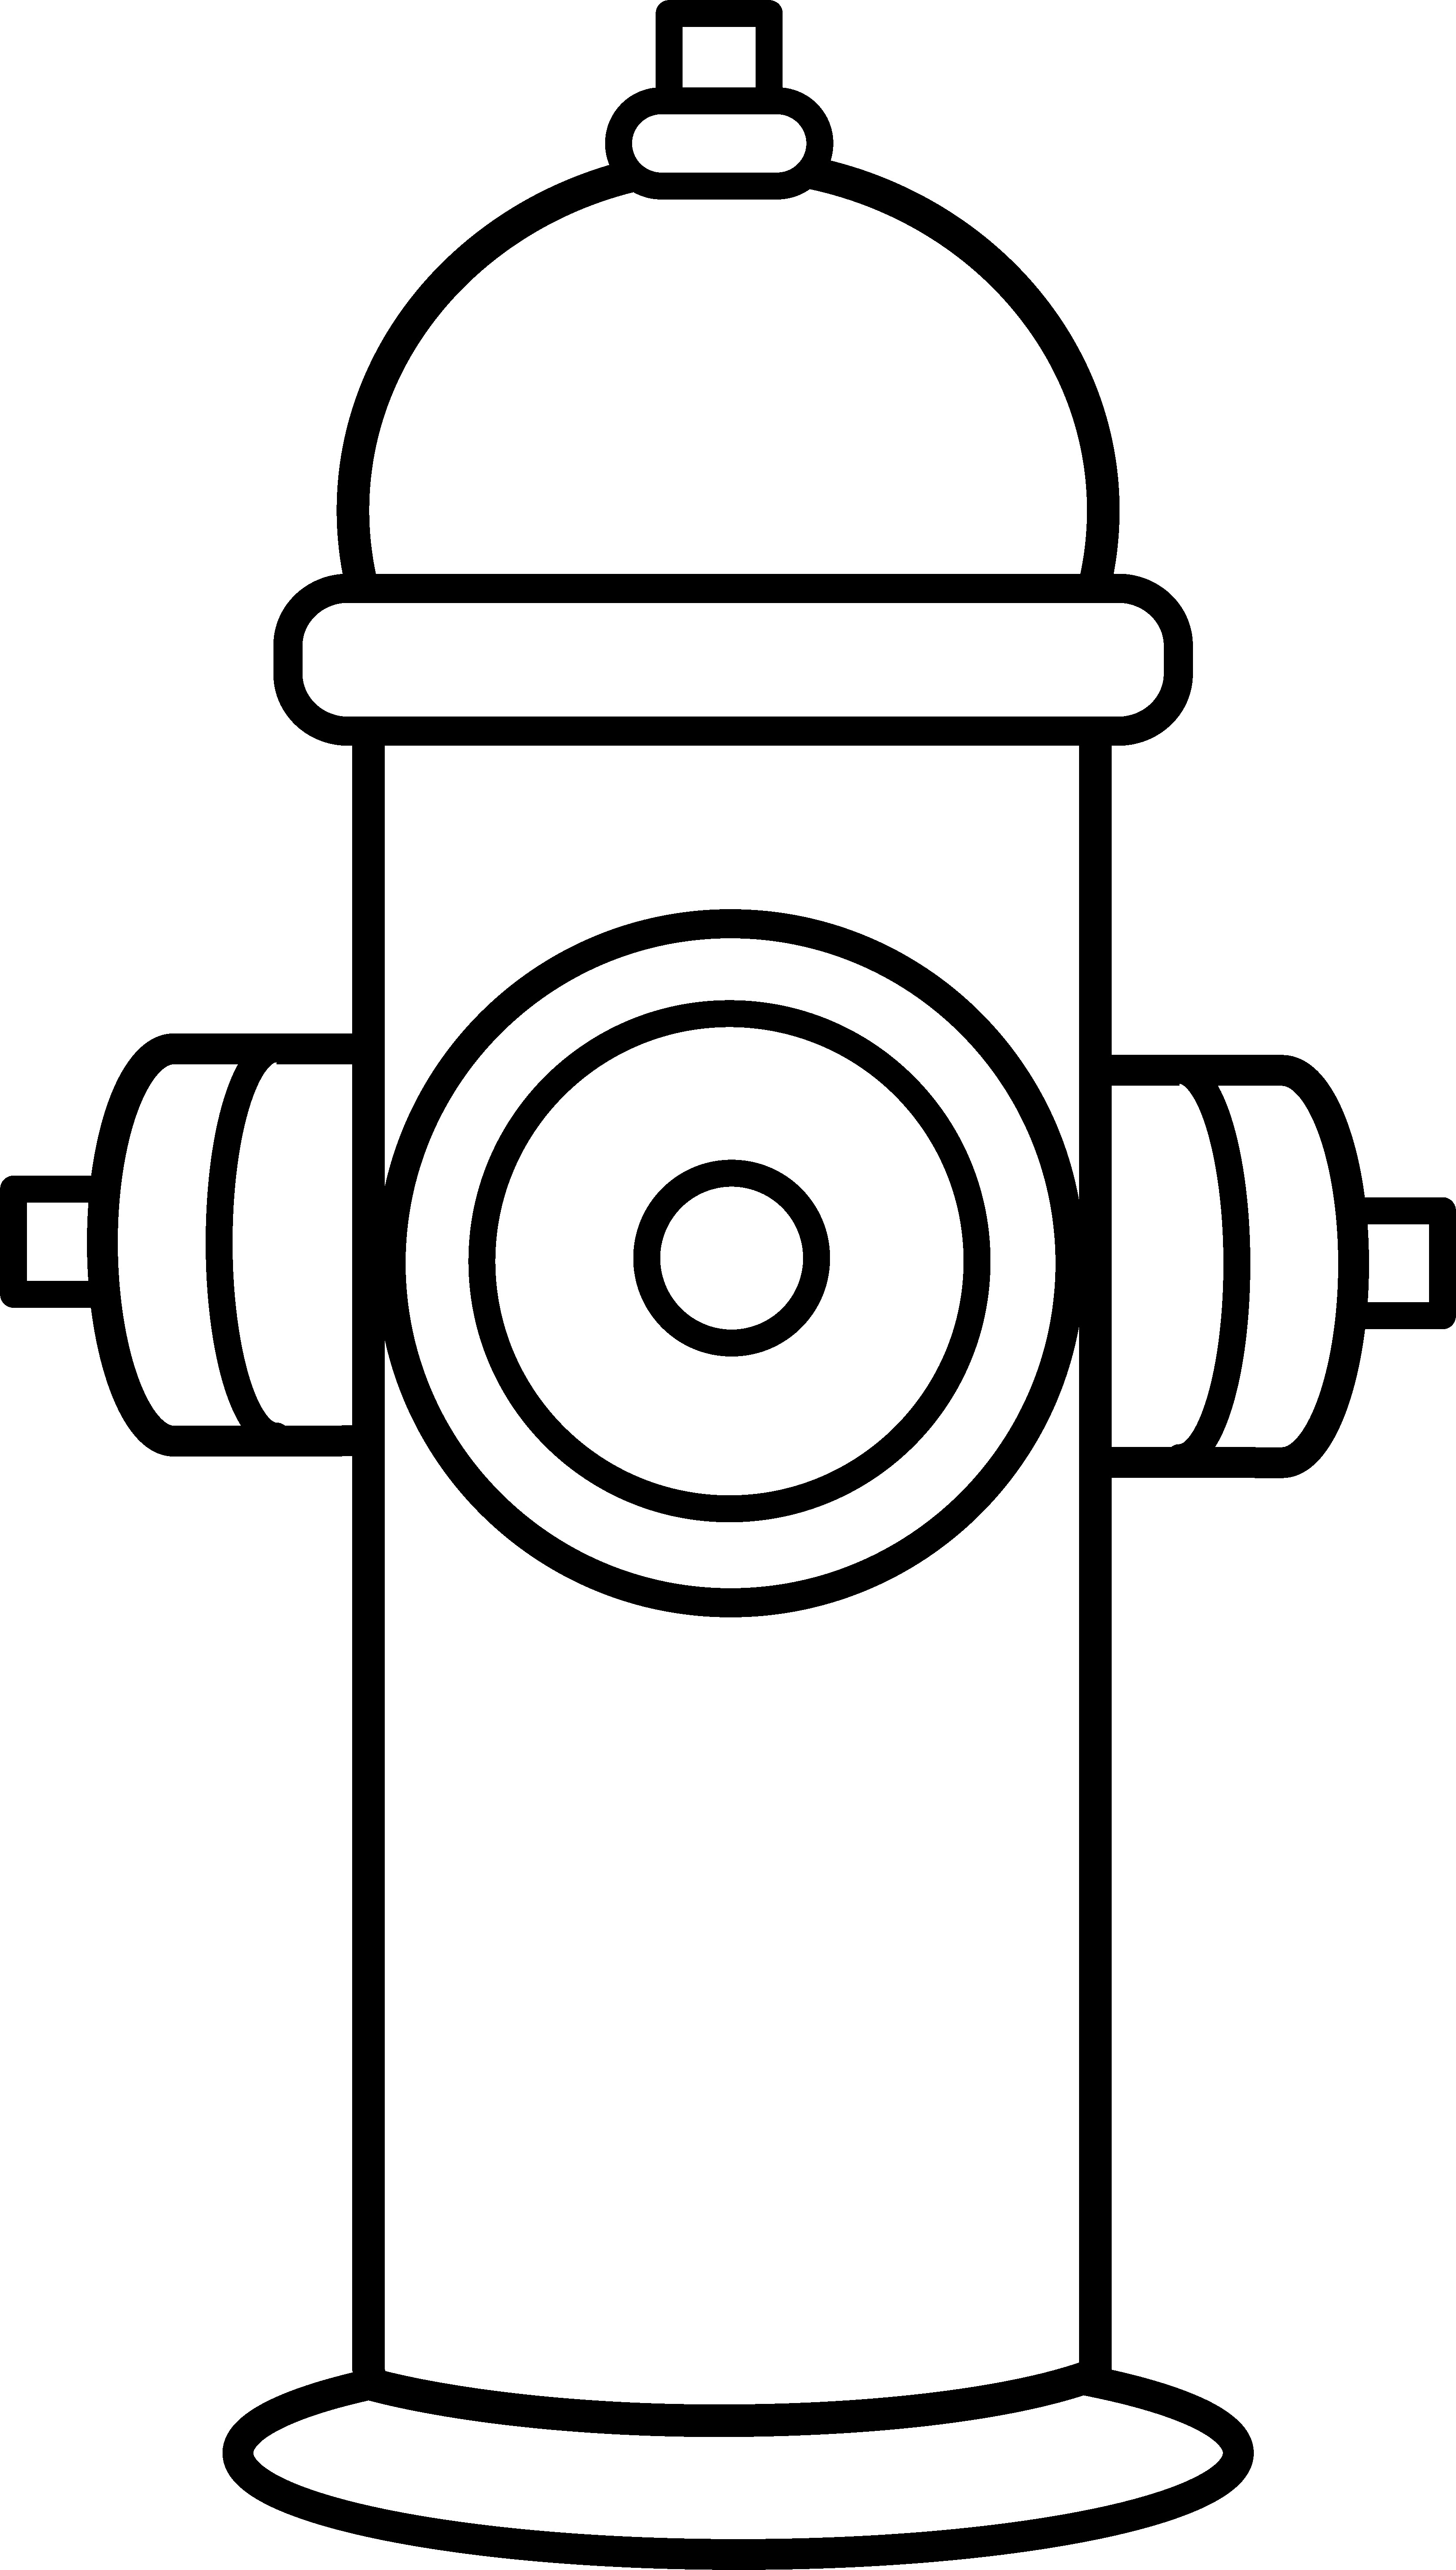 Fire Hydrant Printable Fire Hydrant Coloring Page Free Clip Art